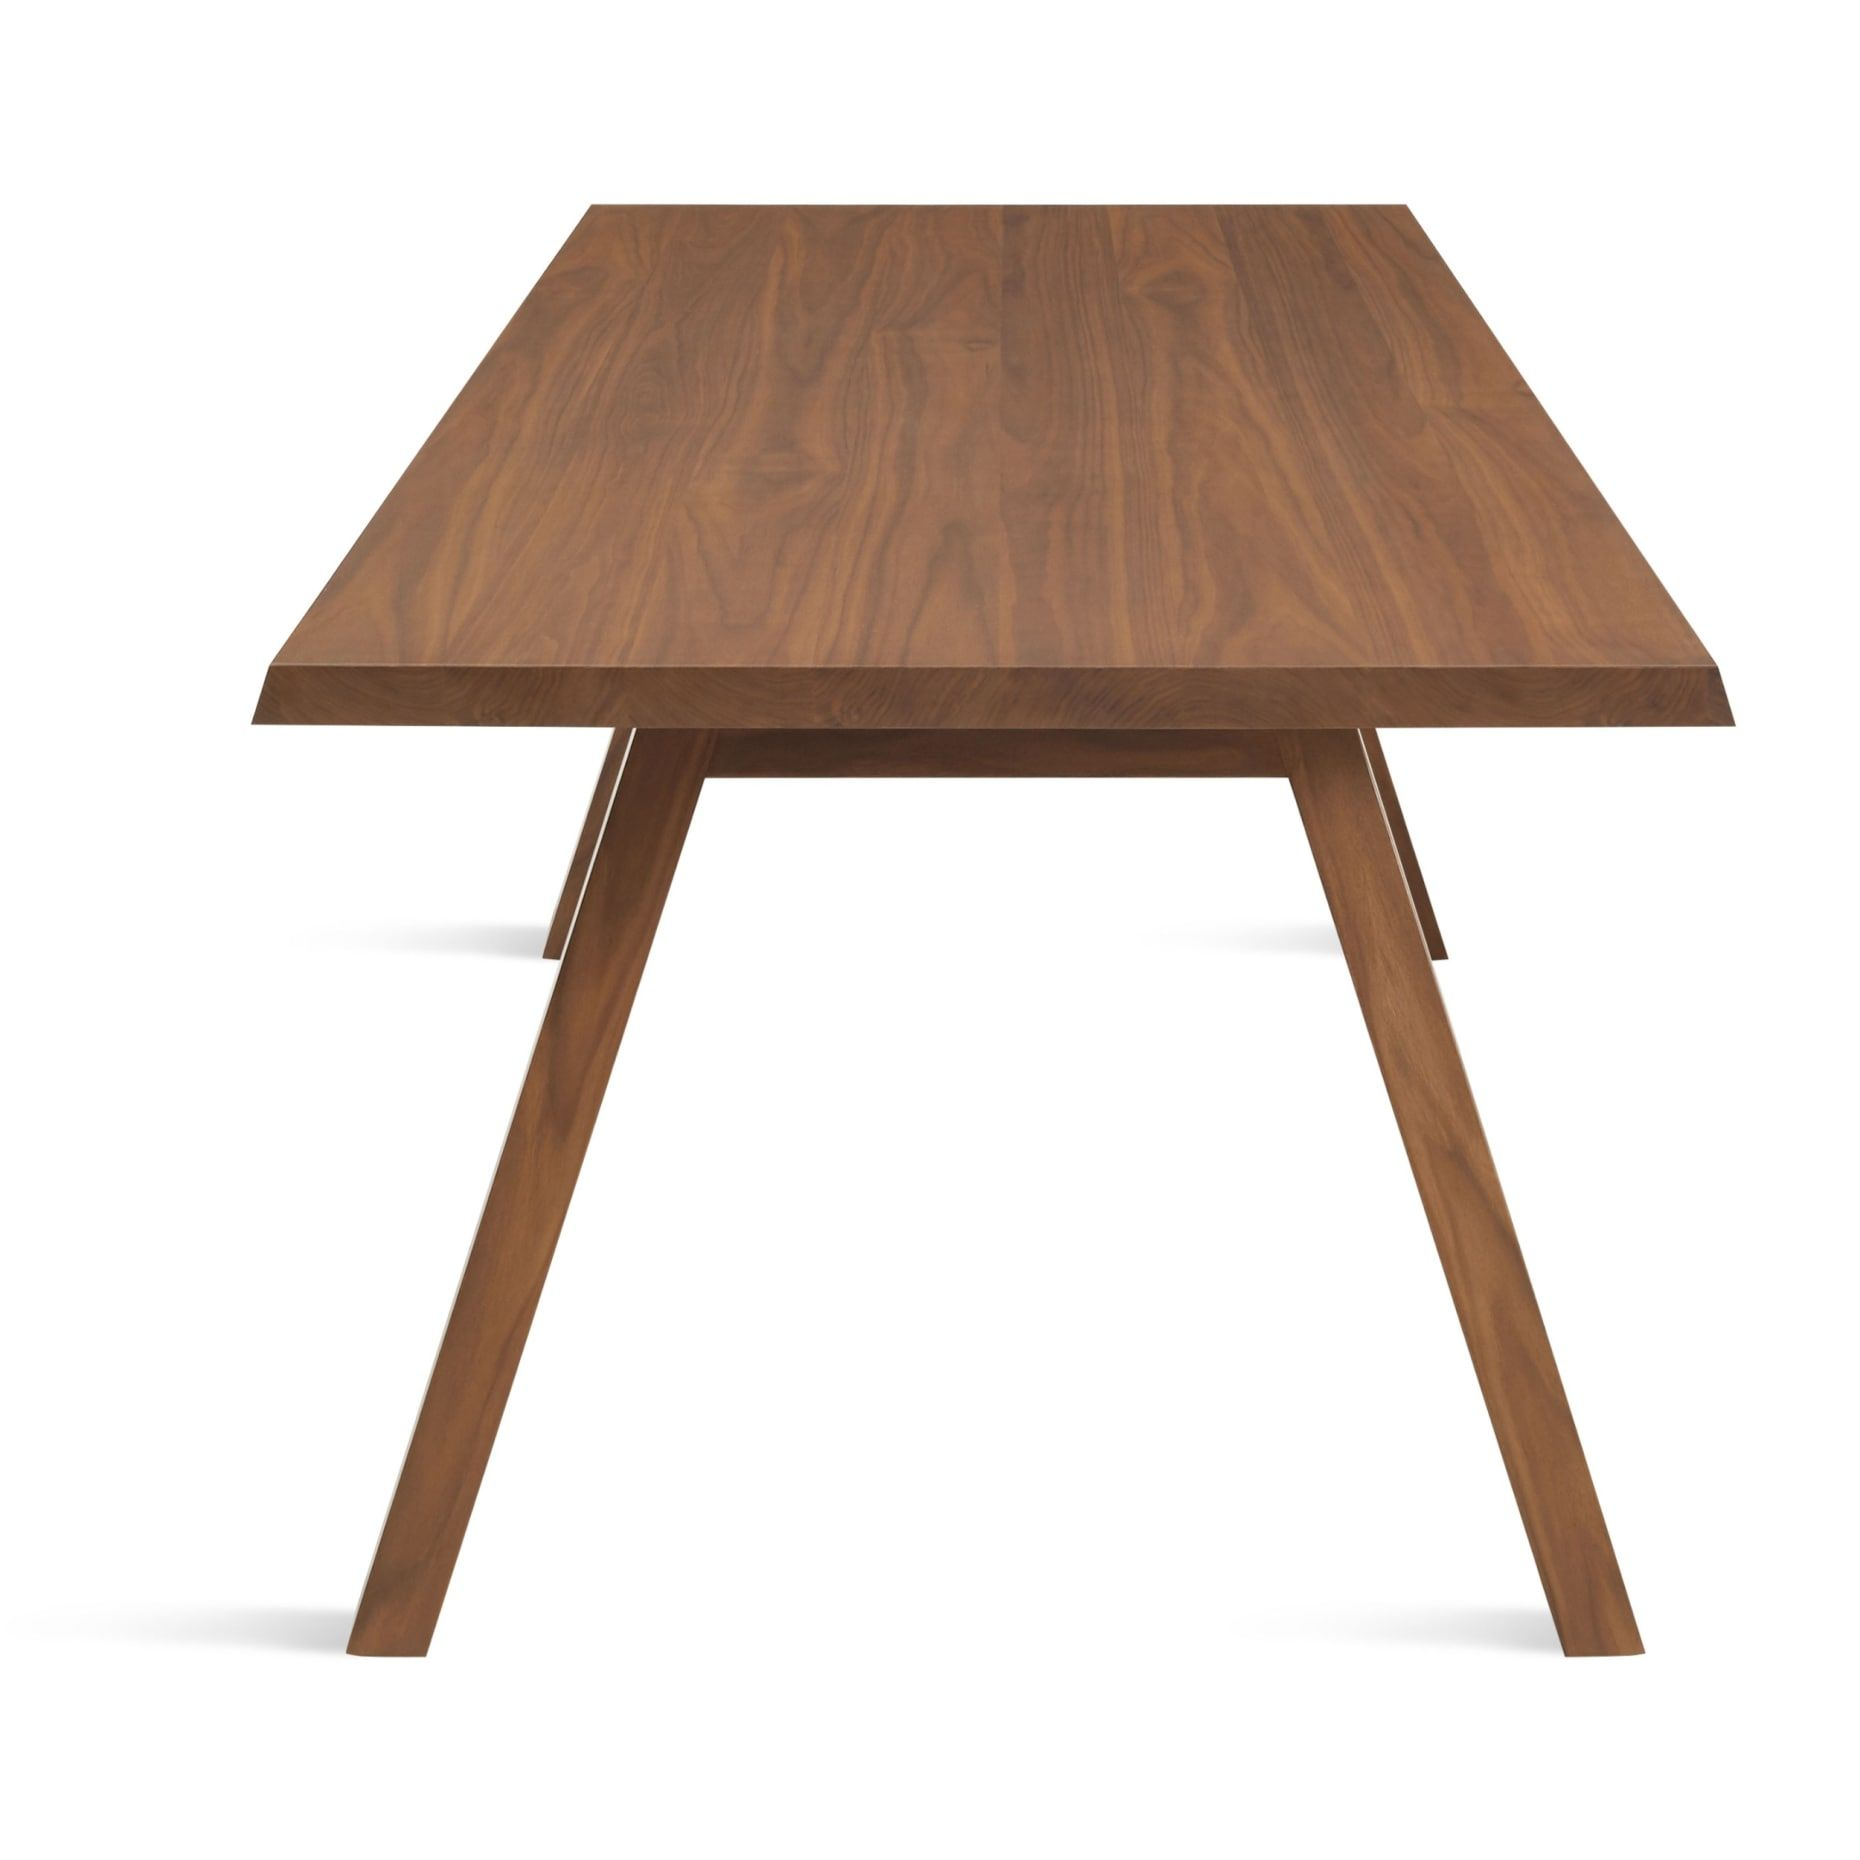 A Walk In The Park 90 Modern Rectangular Wood Dining Table Blu